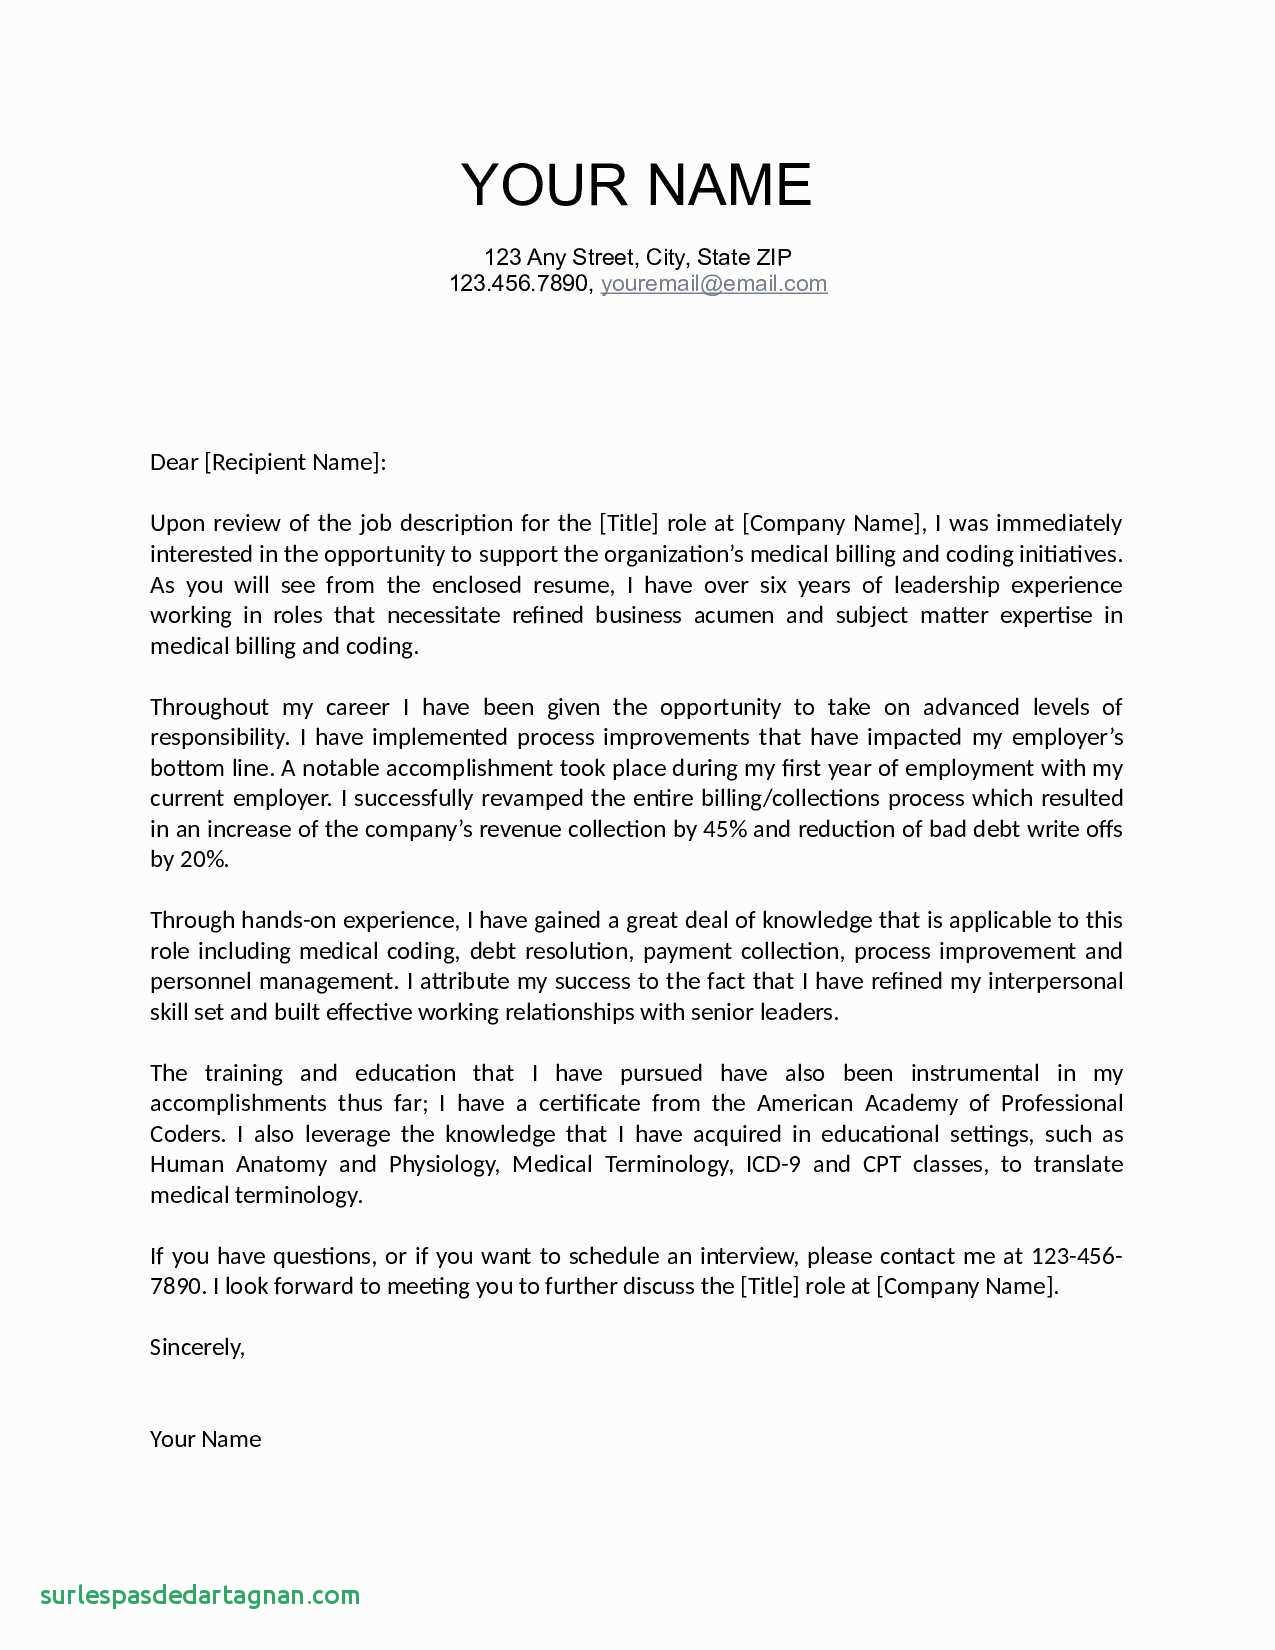 Letter Of Collaboration Template - Lindatellingtonjones Resume formats and Template Frees